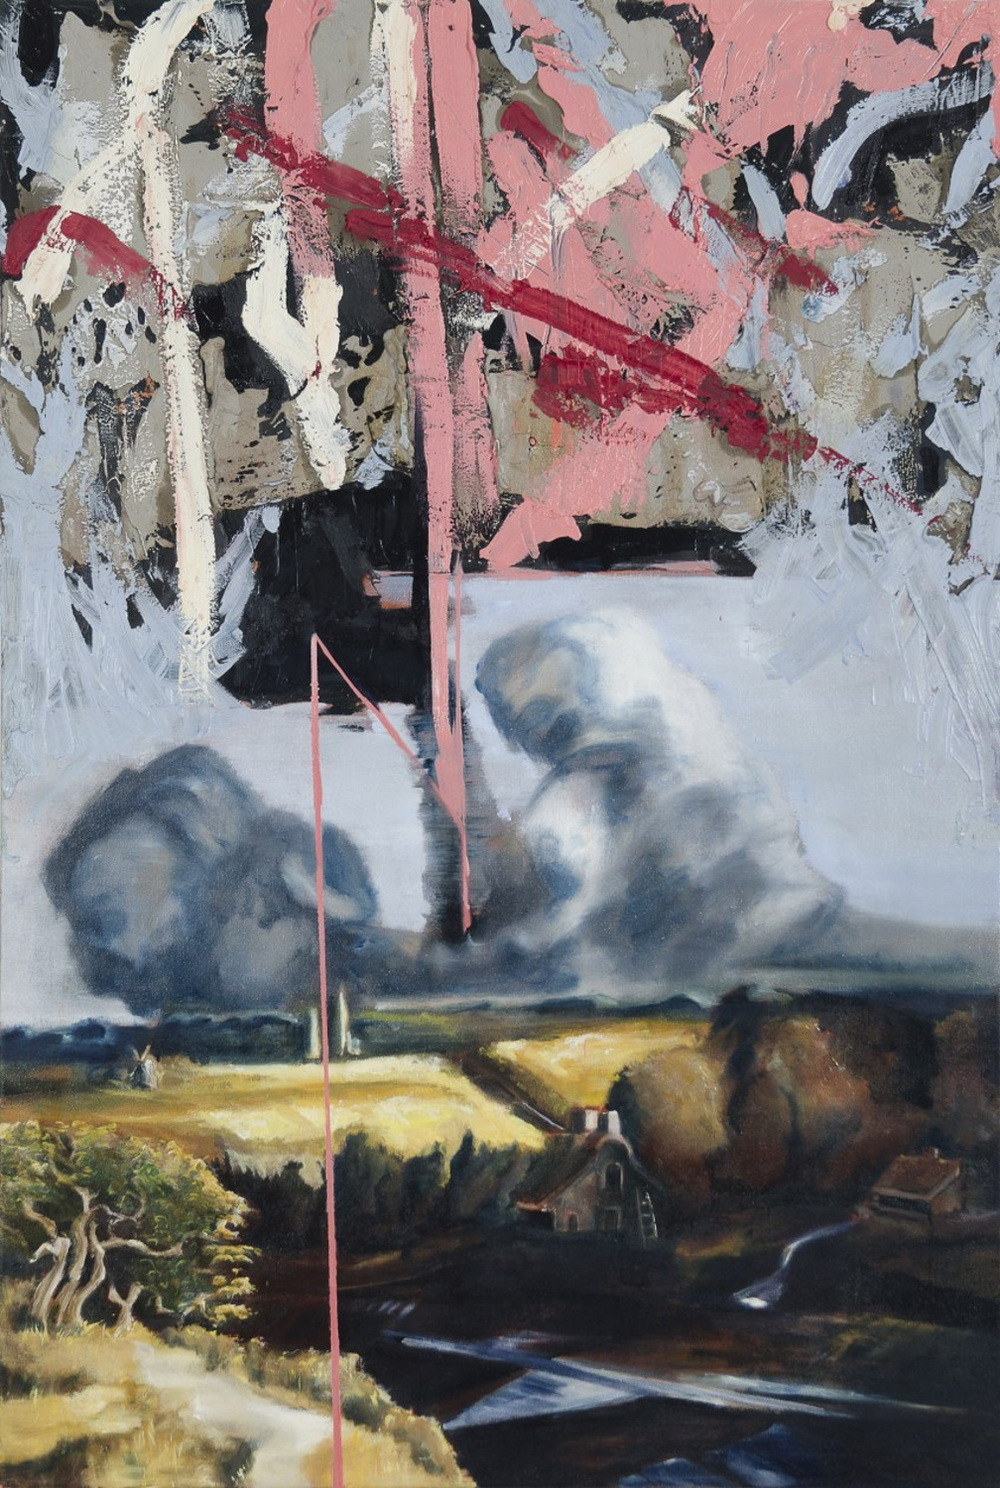 Heaven Emasculated II, Oil on canvas, 160x100 cm, 2012